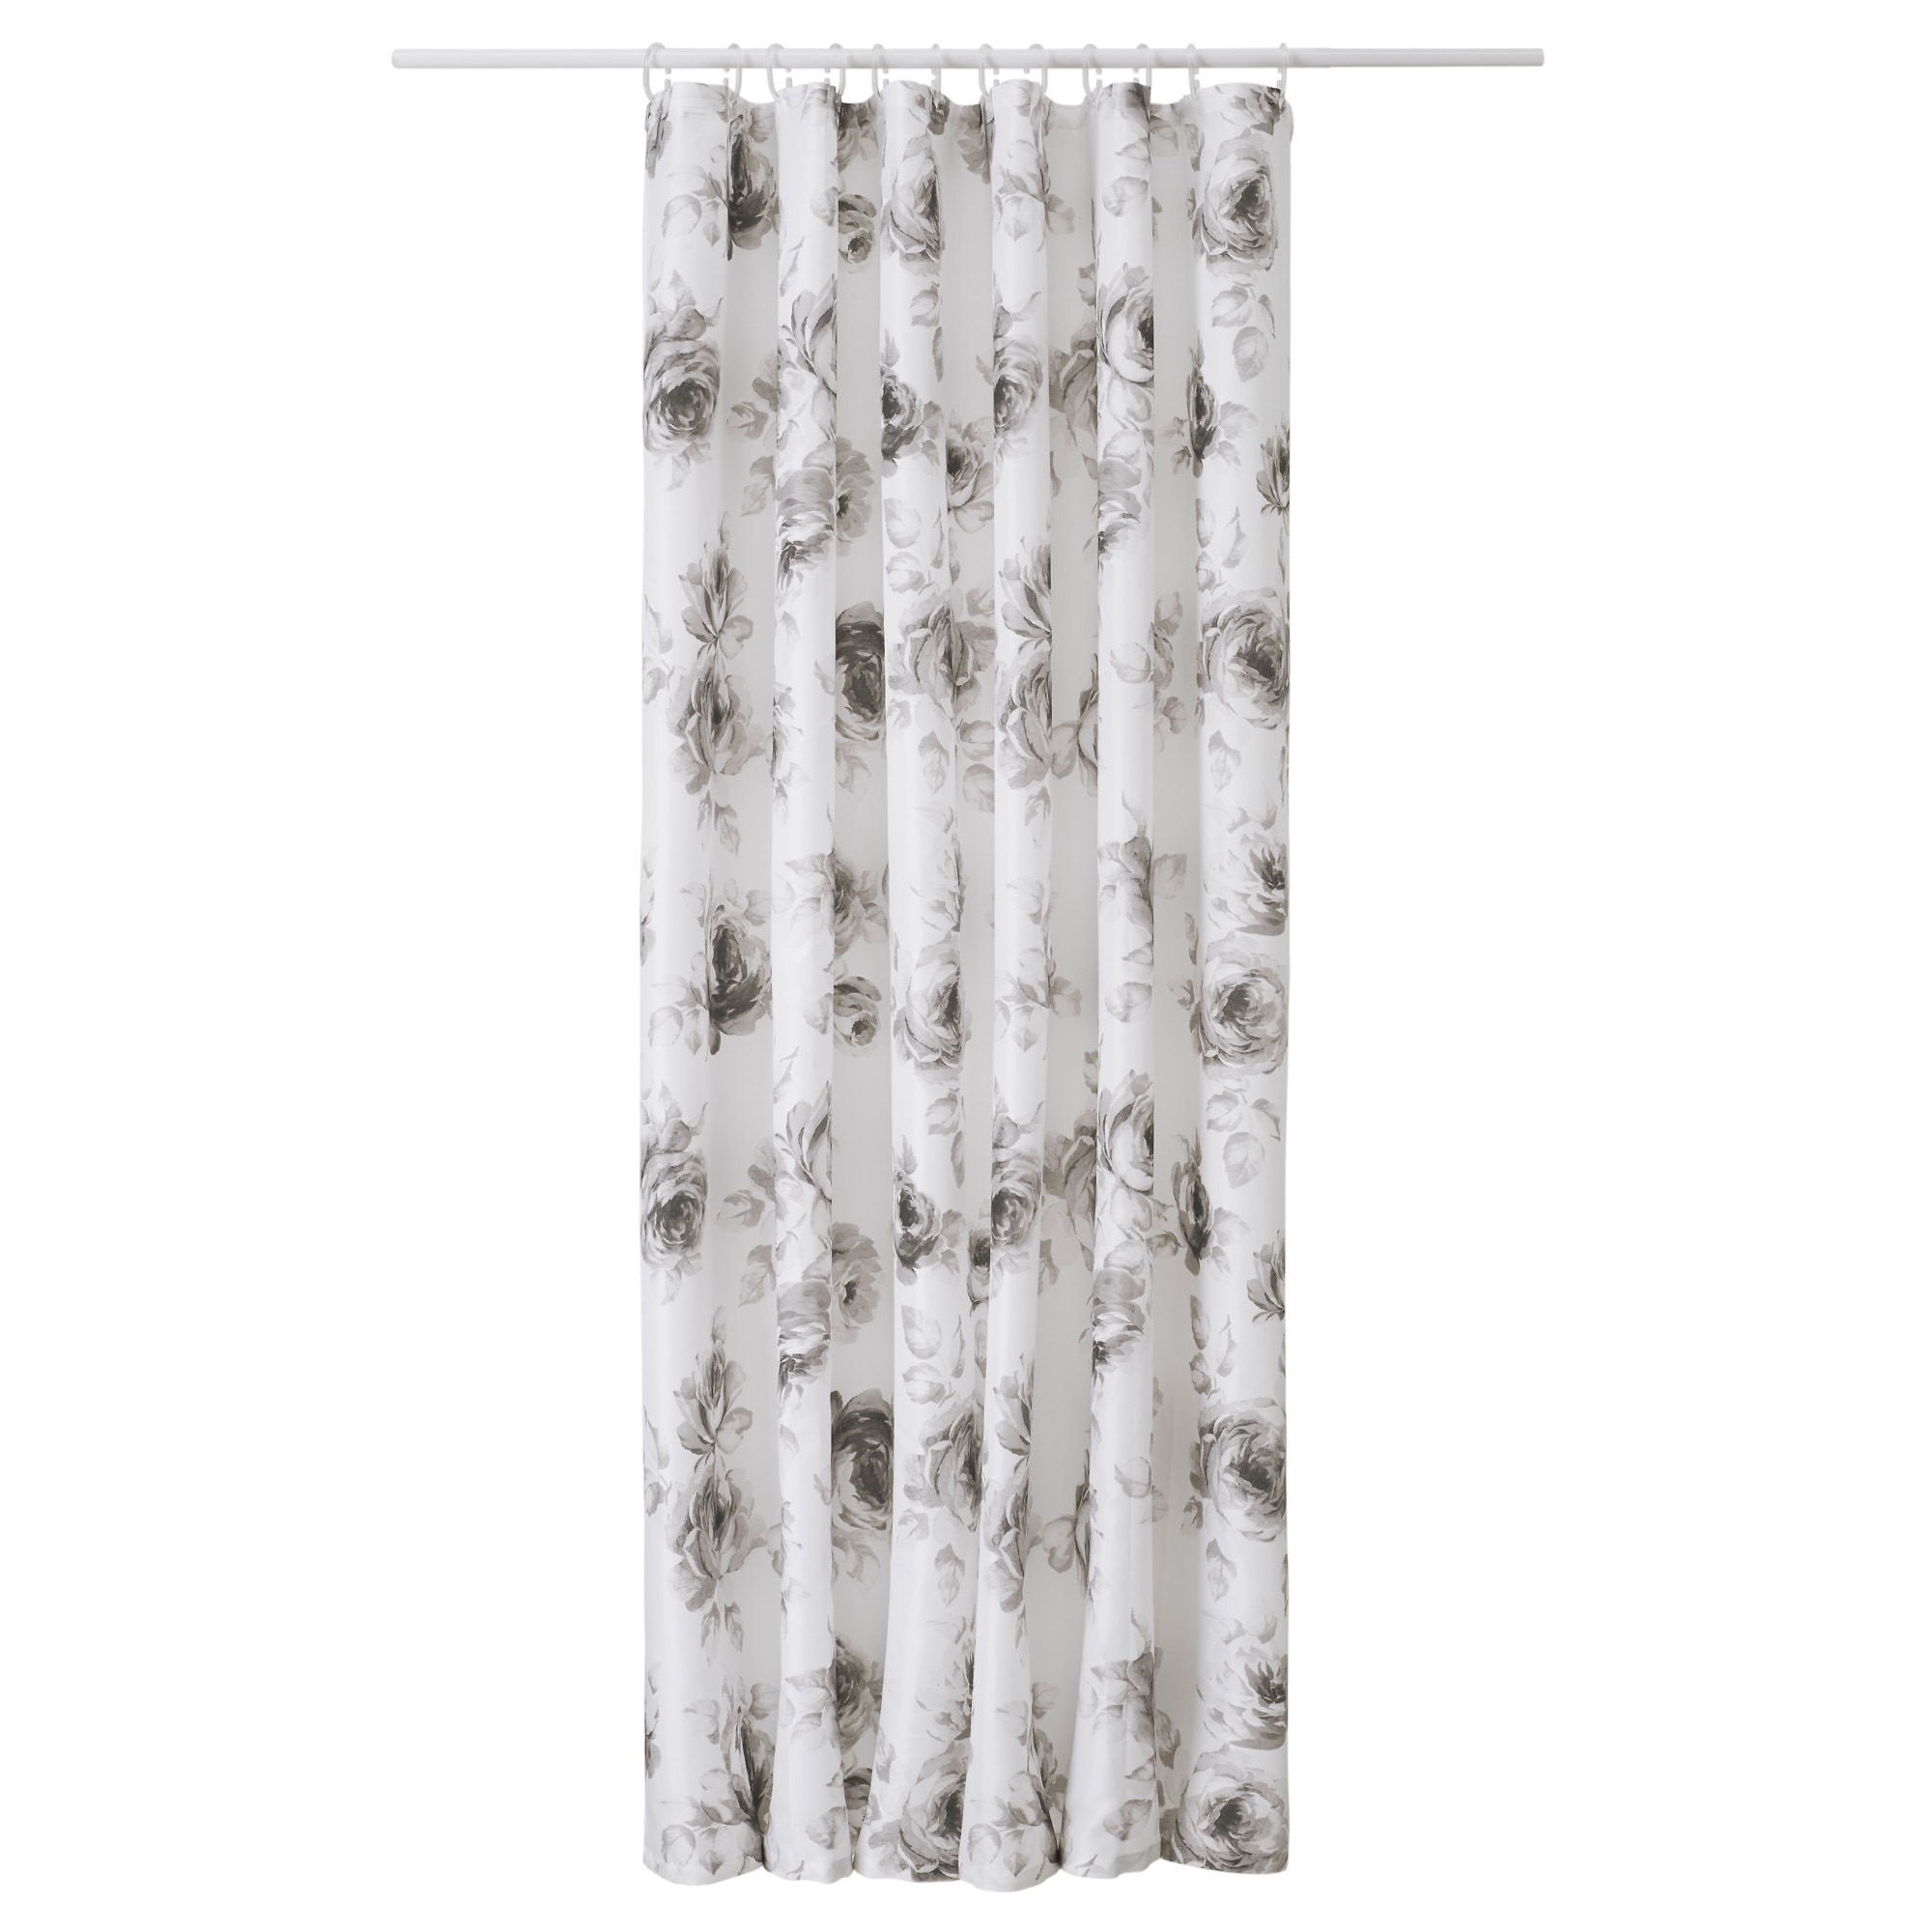 AGGERSUND Shower curtain - IKEA